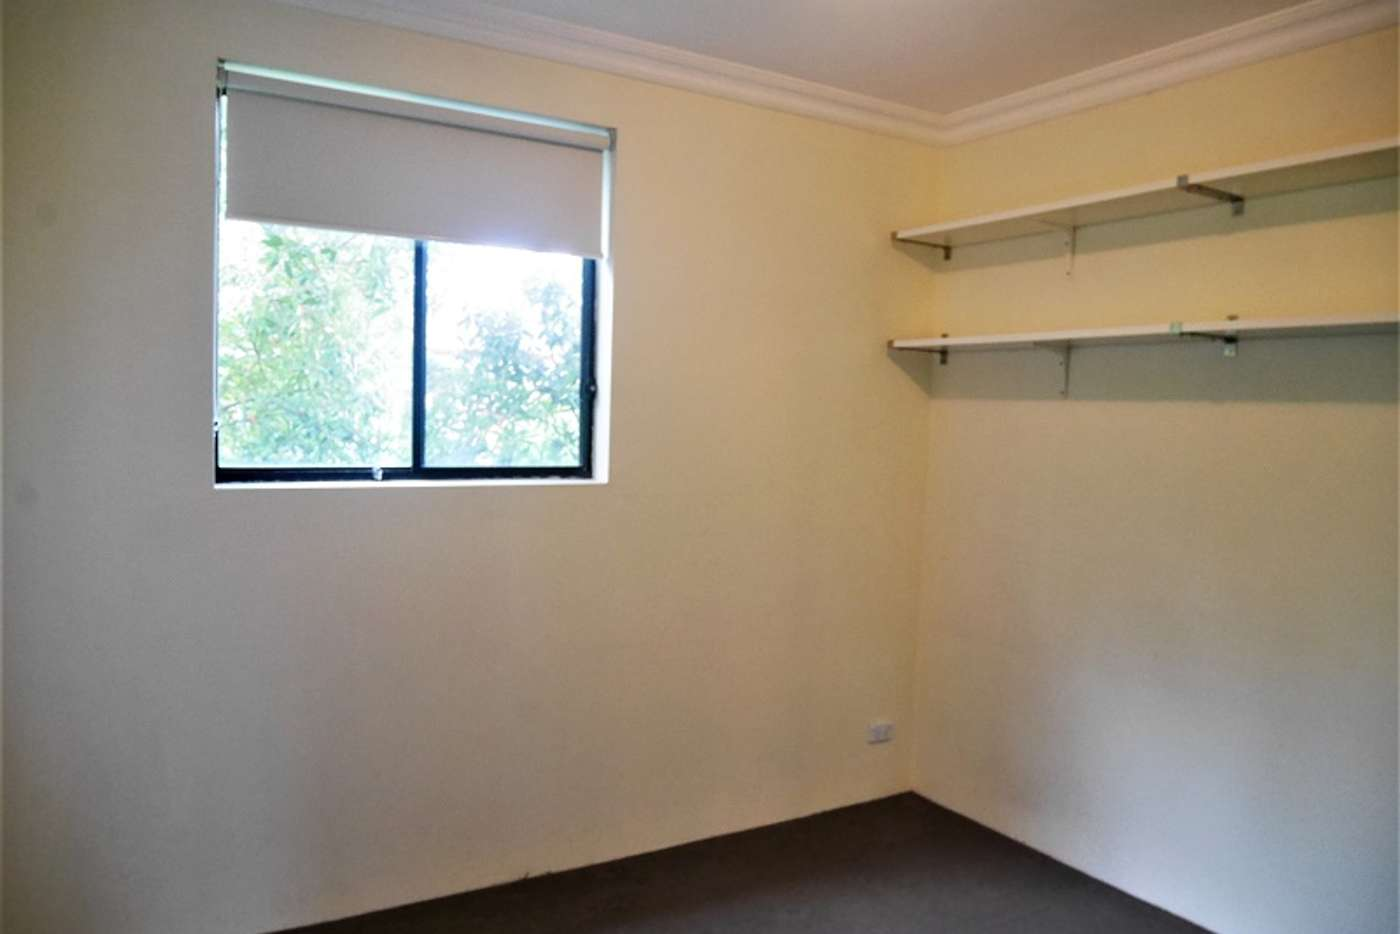 Seventh view of Homely apartment listing, 5/72 Marsden Street, Parramatta NSW 2150